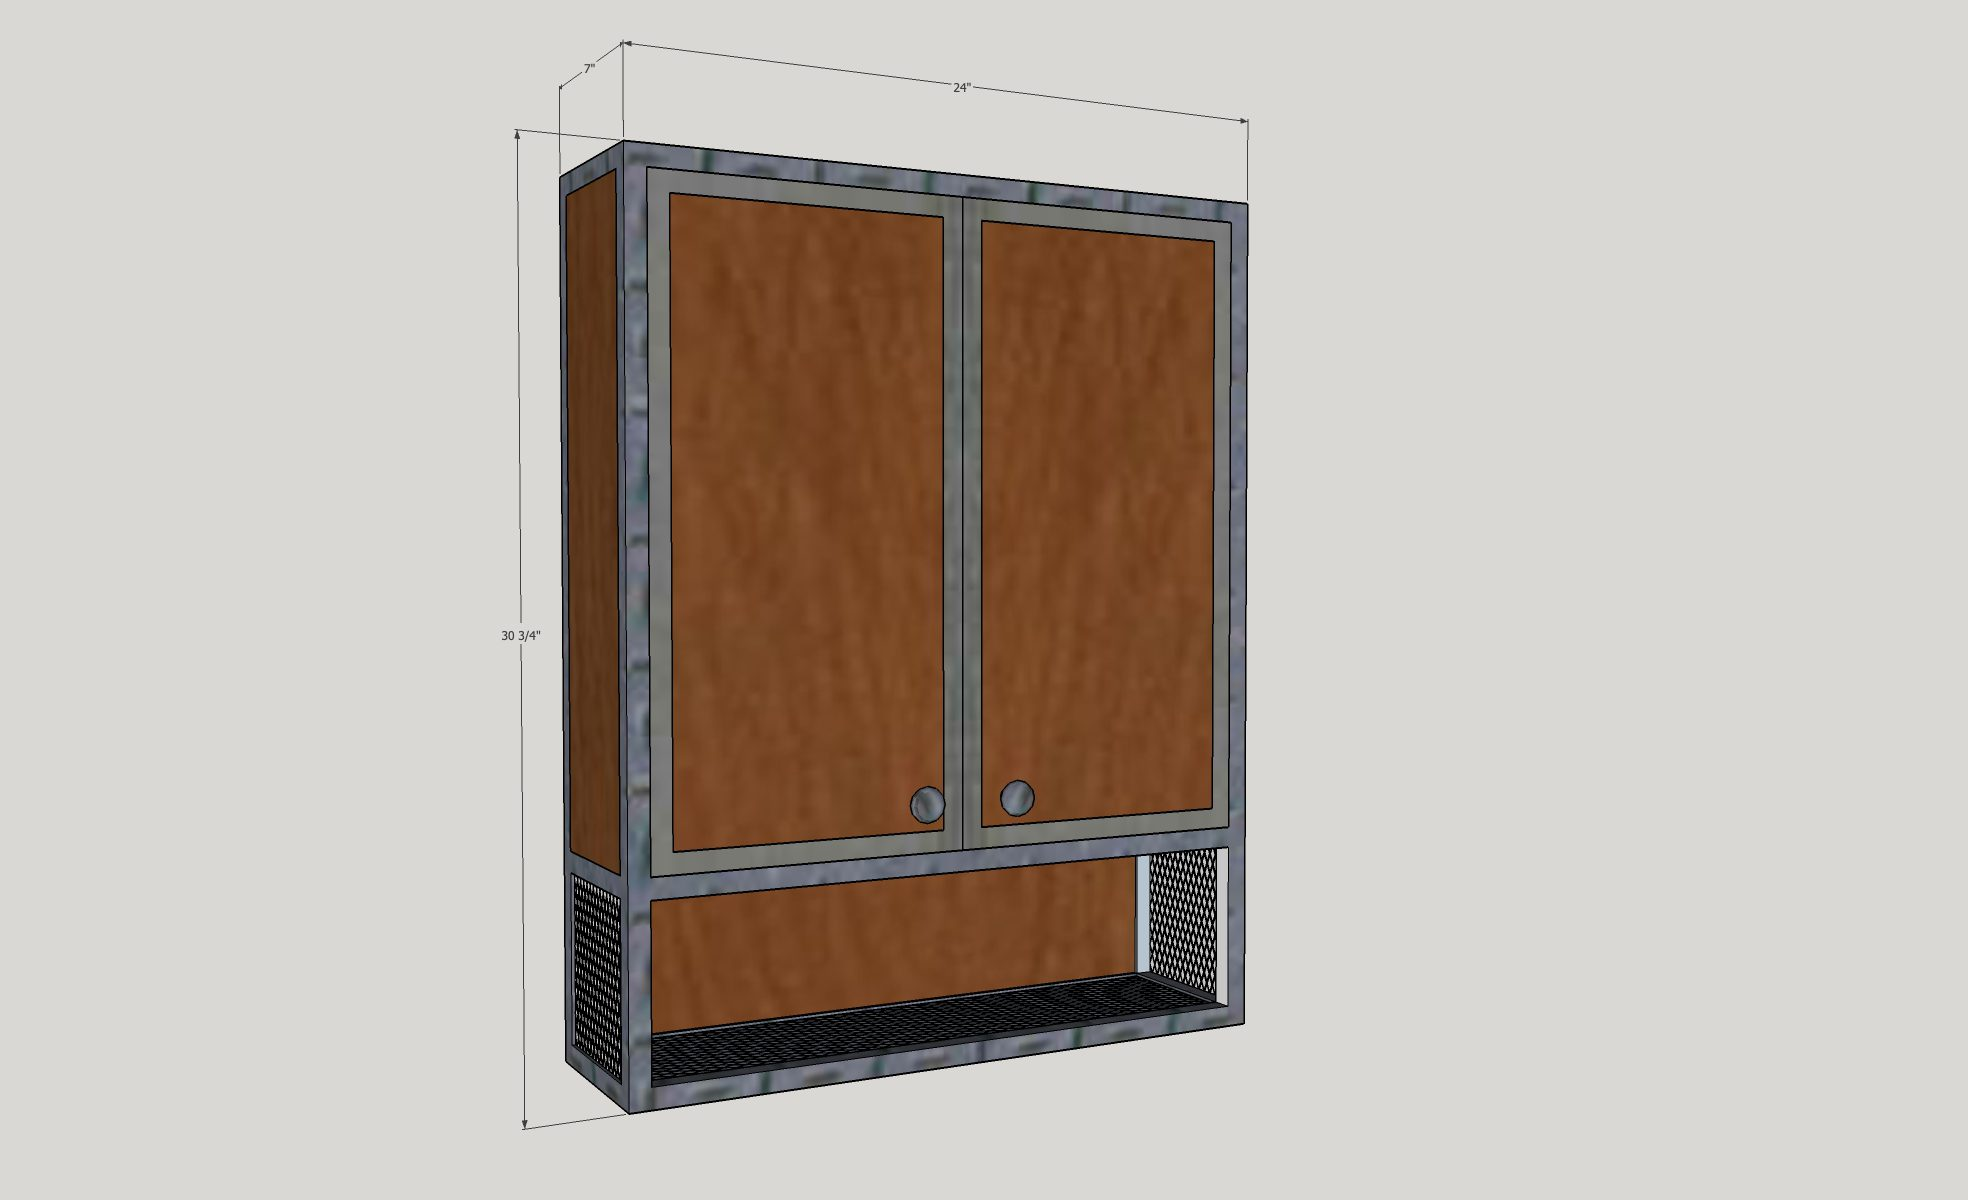 3D drawing of bathroom cabinet